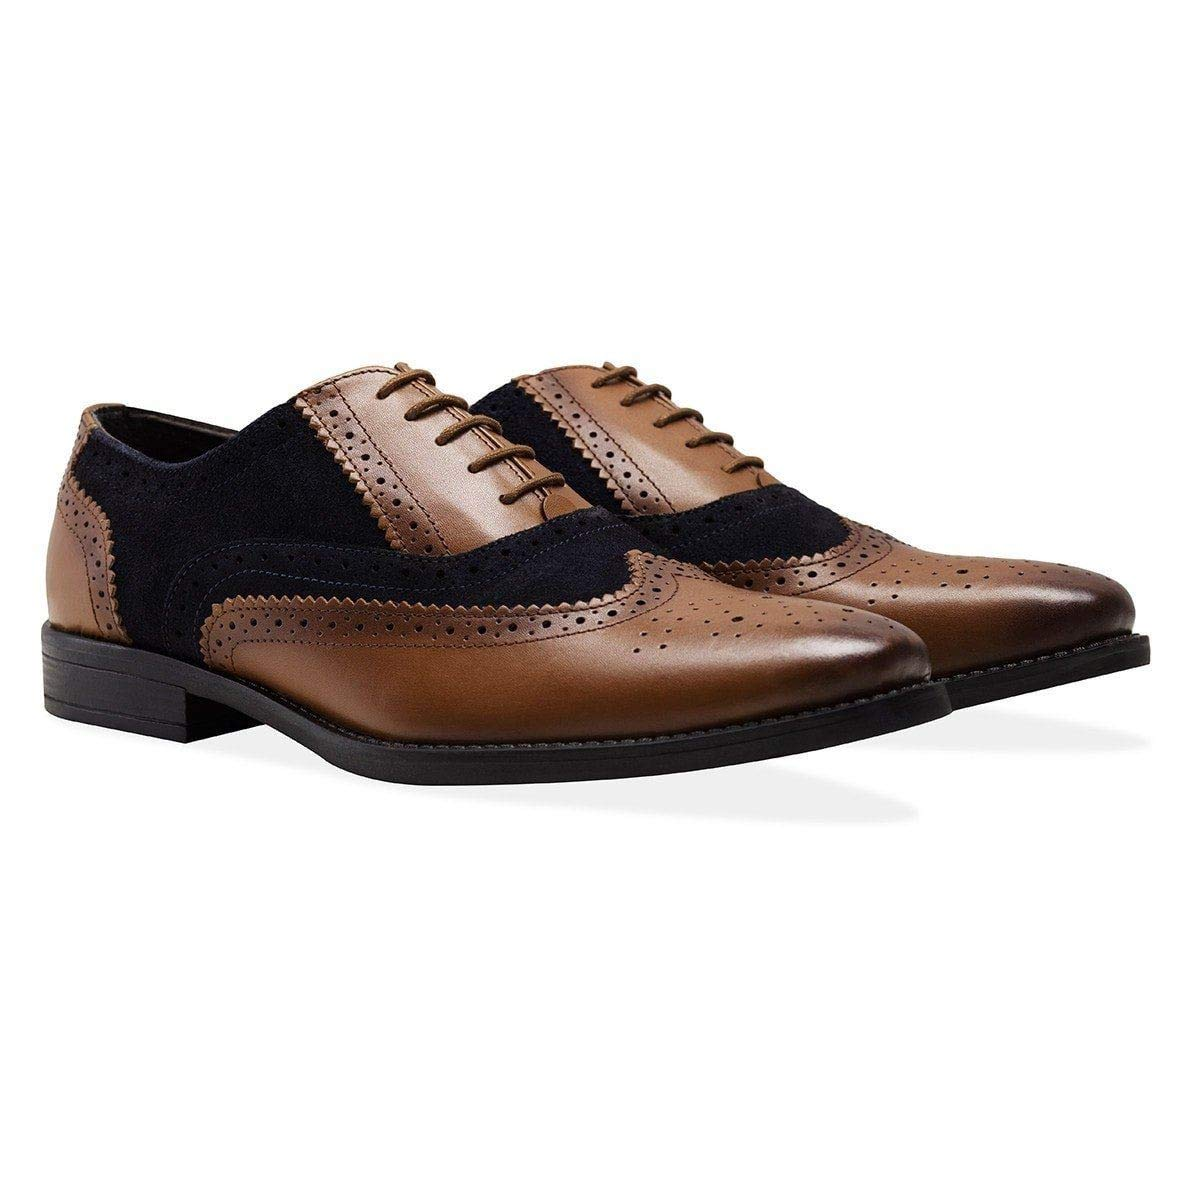 TALLA 45 EU. Redfoot Mens Navy & Brown Oxford Brogue Shoe